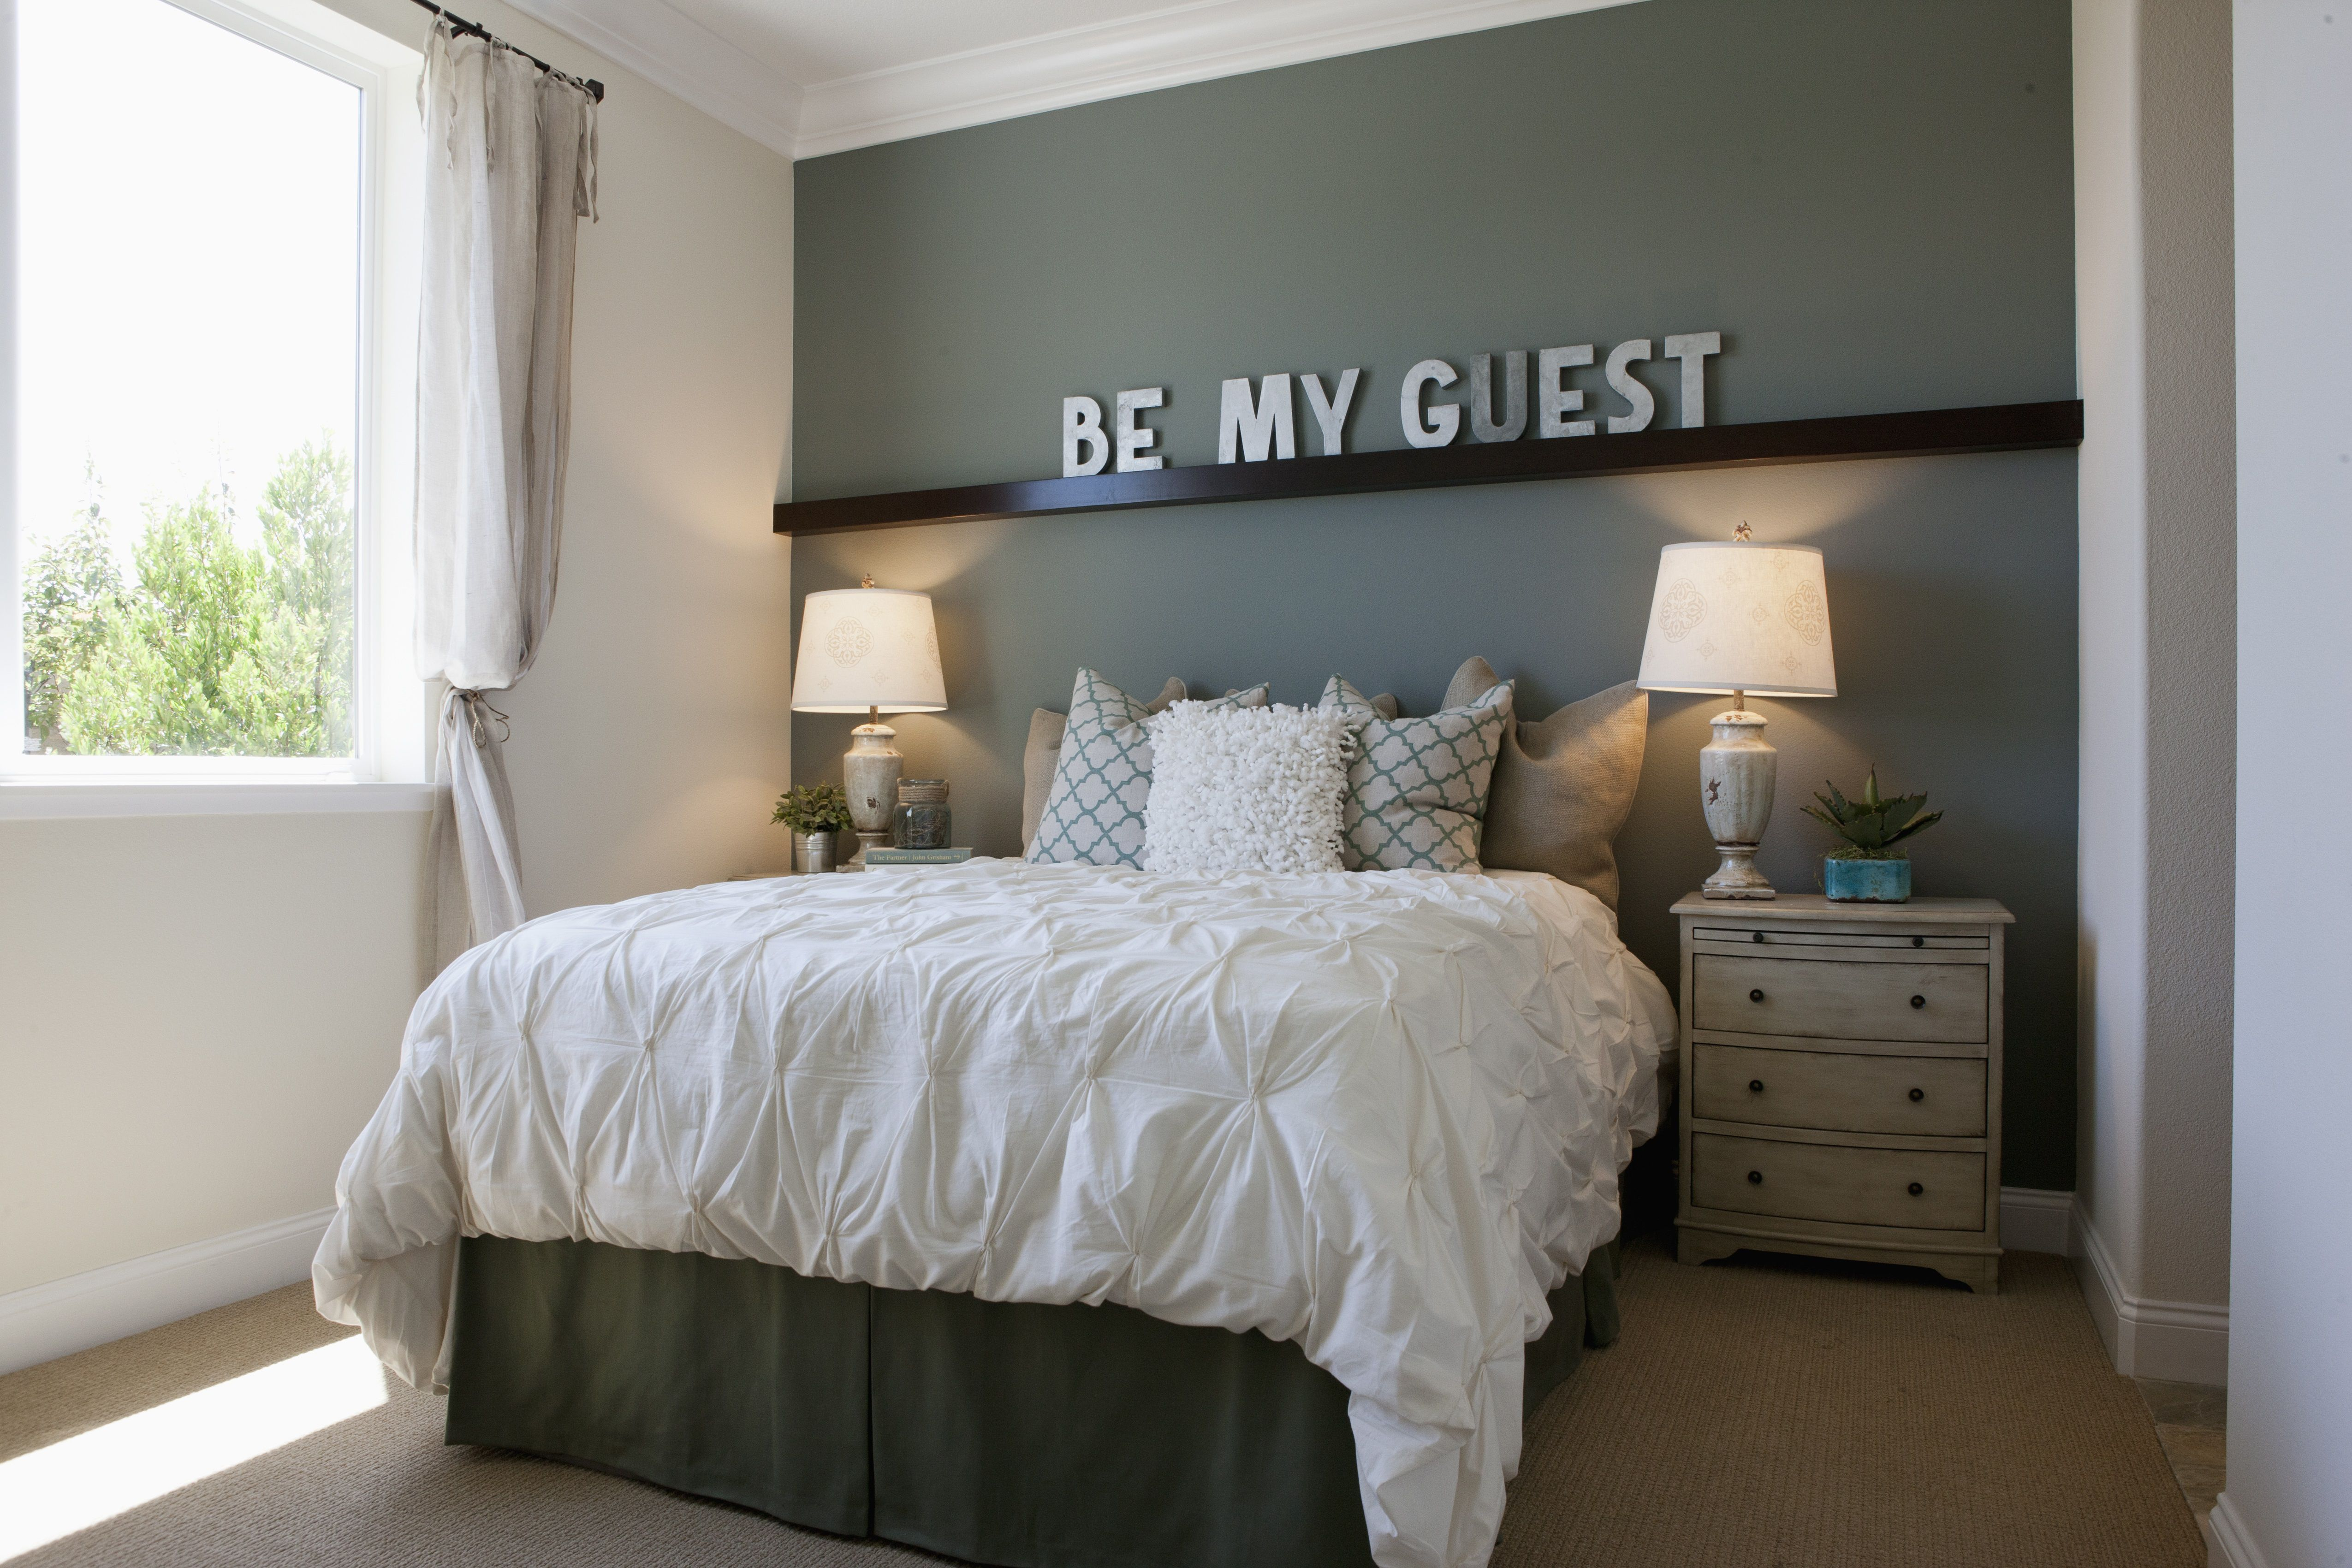 Guest room design furniture - How To Make Your Guest Room Feel Like Home Bedroom Design Basics